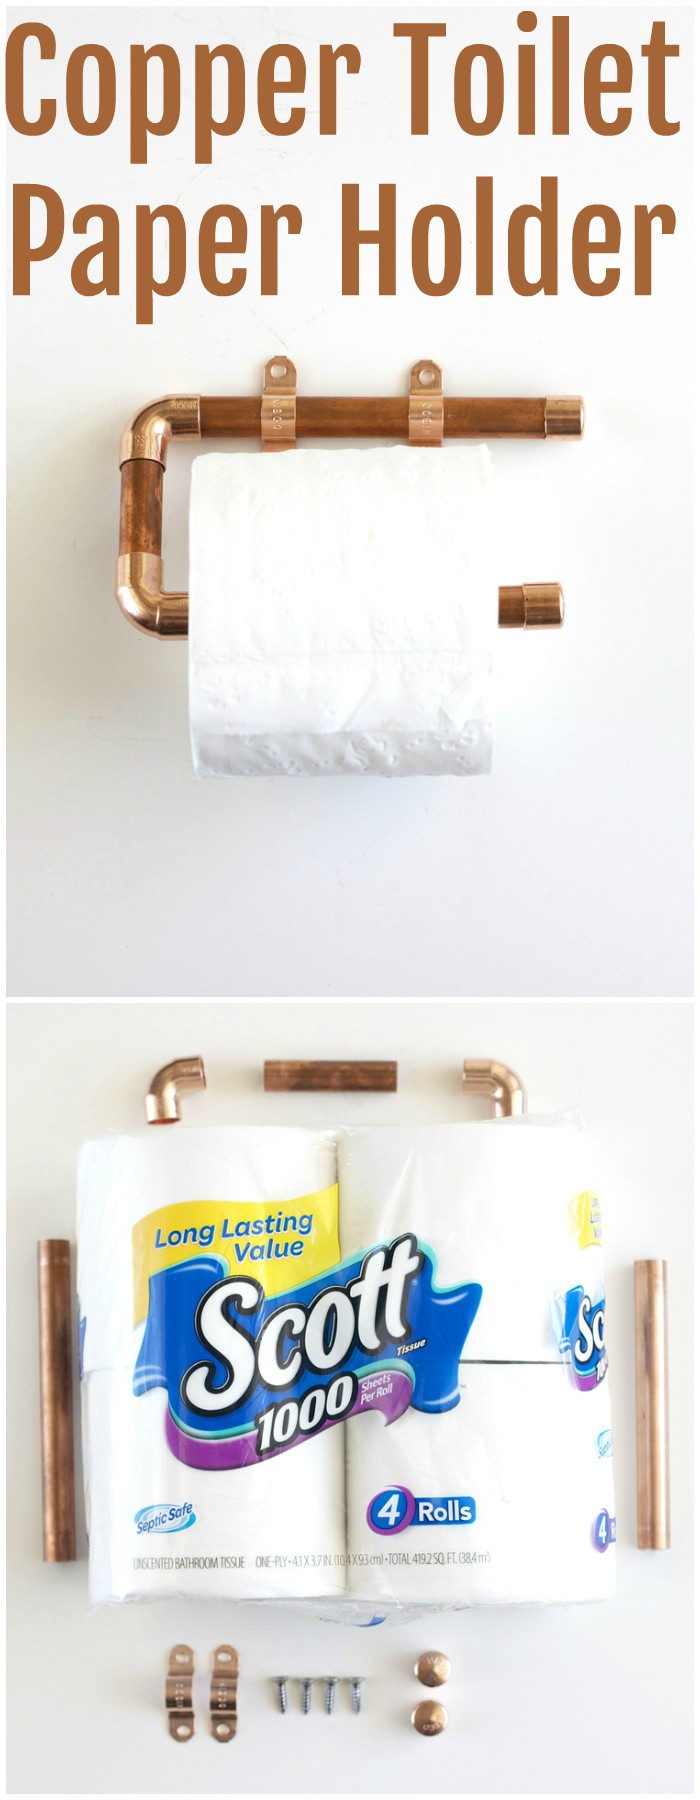 Copper Toilet Paper Holder DIY Toilet Paper Holder Ideas   Add Decor To Bathroom